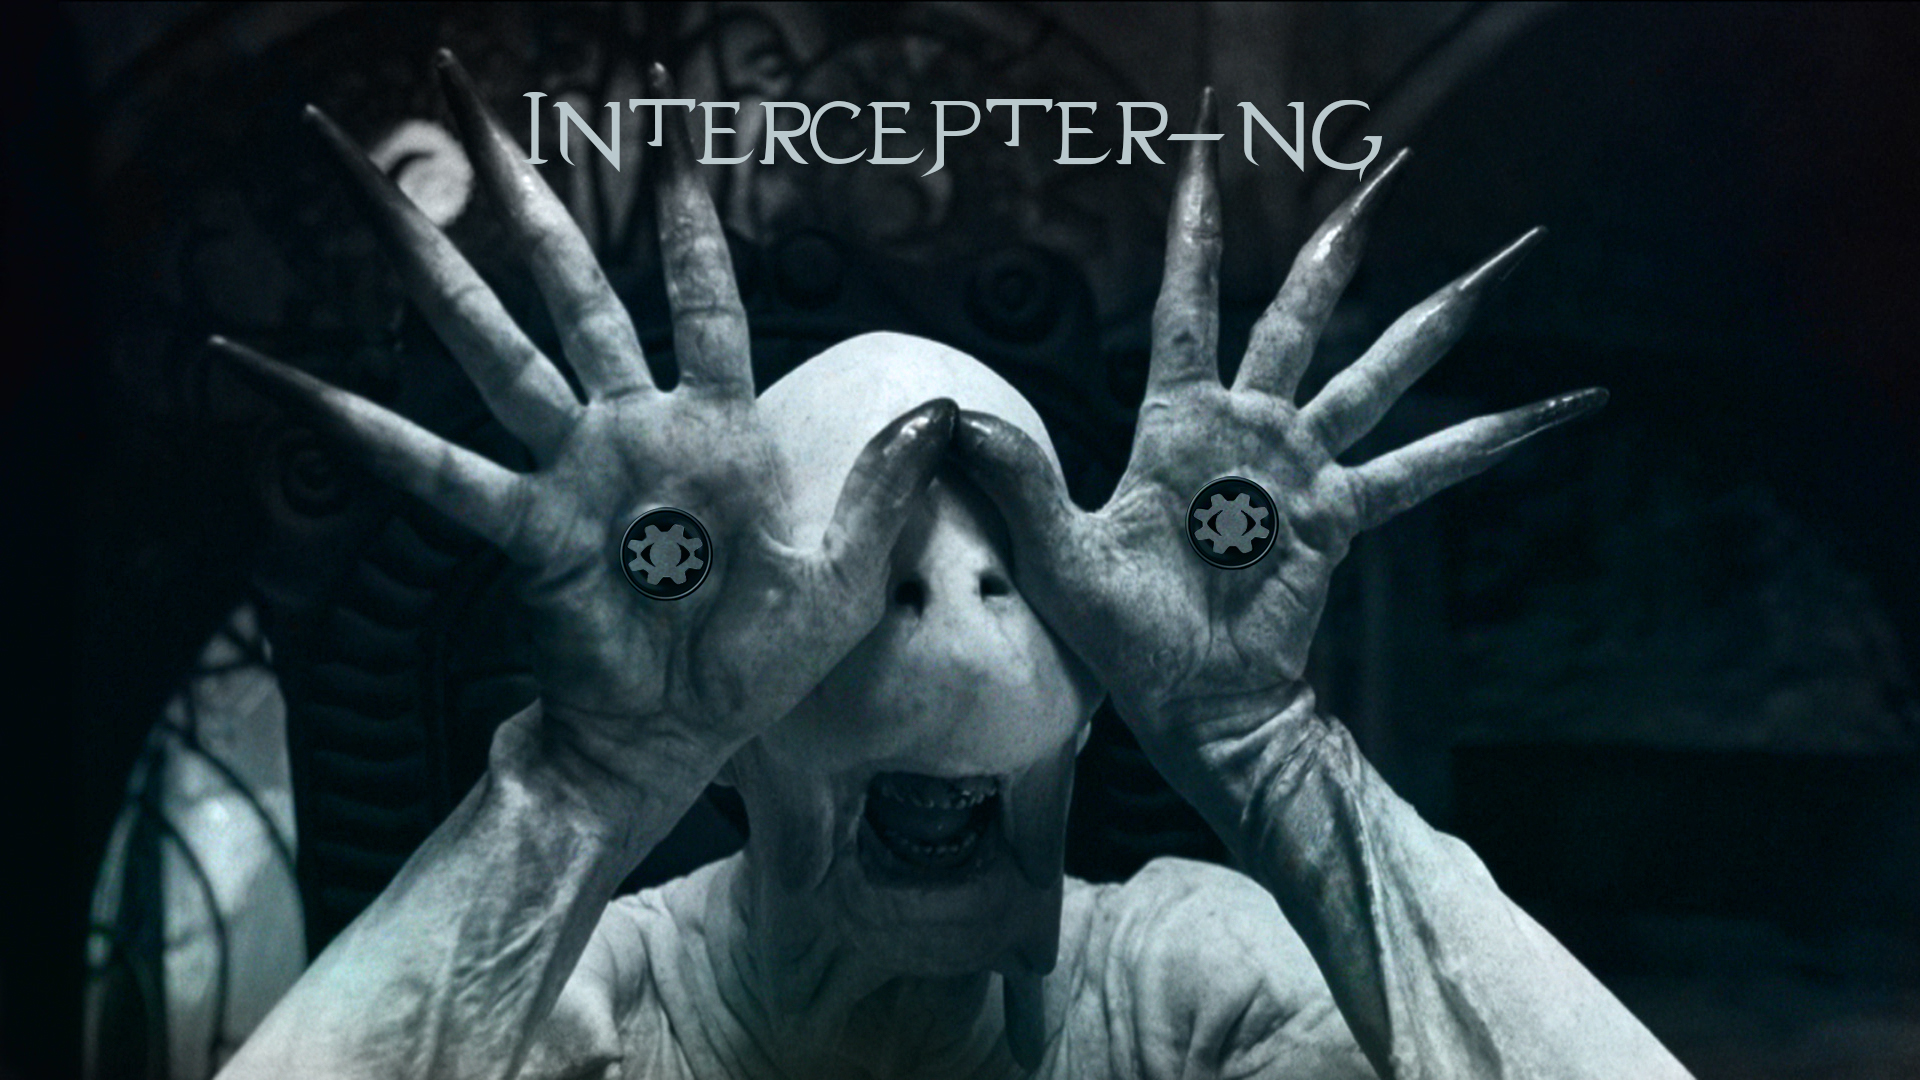 Intercepter-NG official site